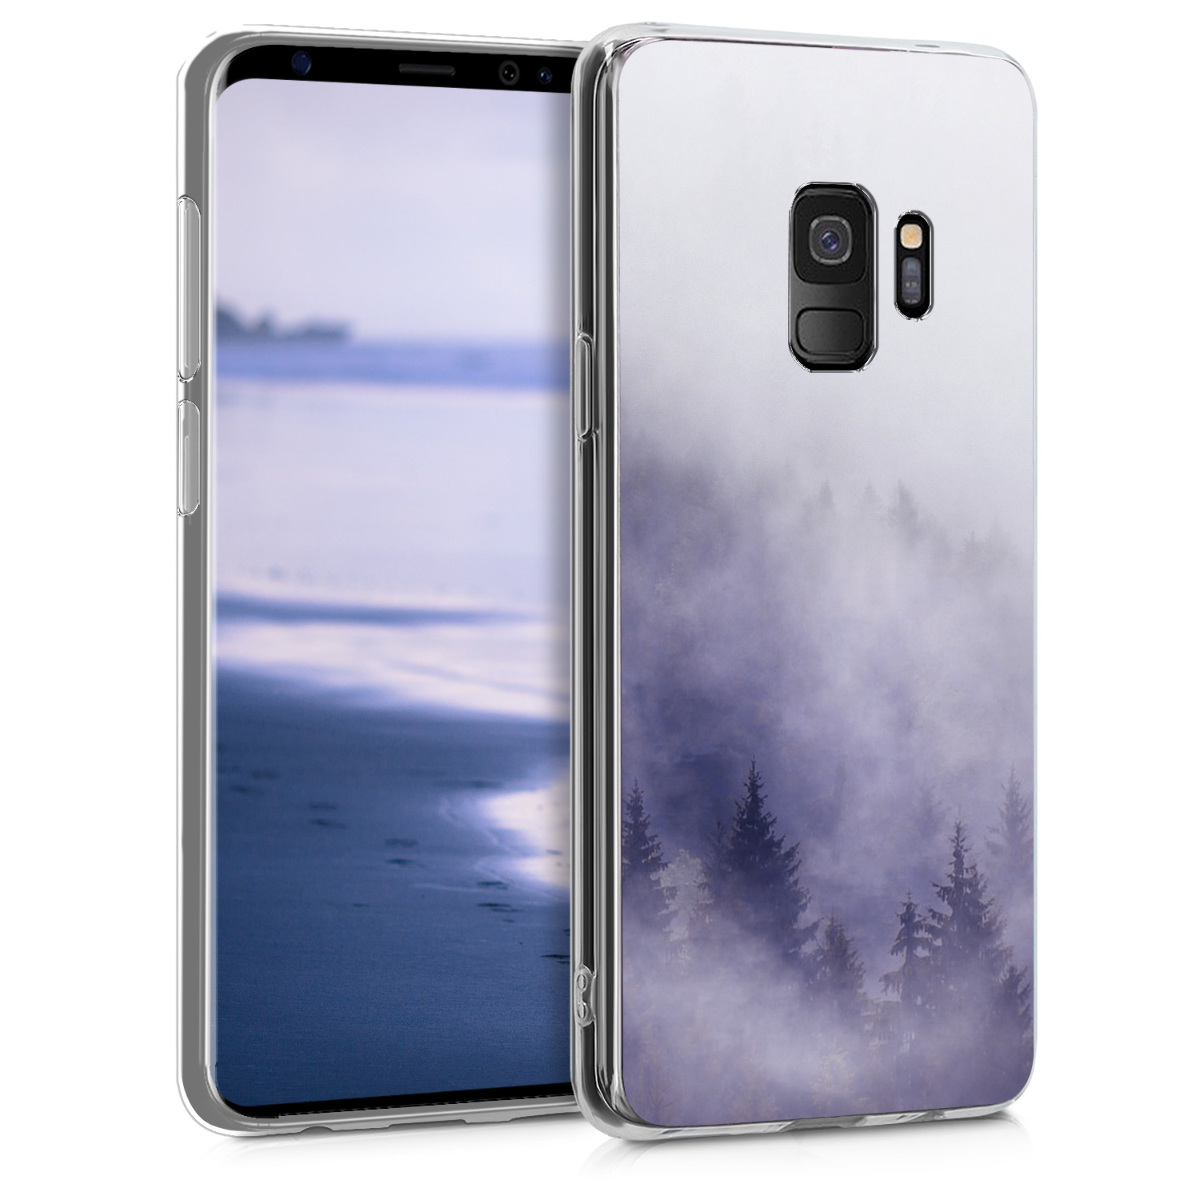 Pouzdro pro Samsung Galaxy S9 - TPU Crystal Clear Back Protective Cover IMD Design - Misty Forest Light Grey / Blue / Dark Grey